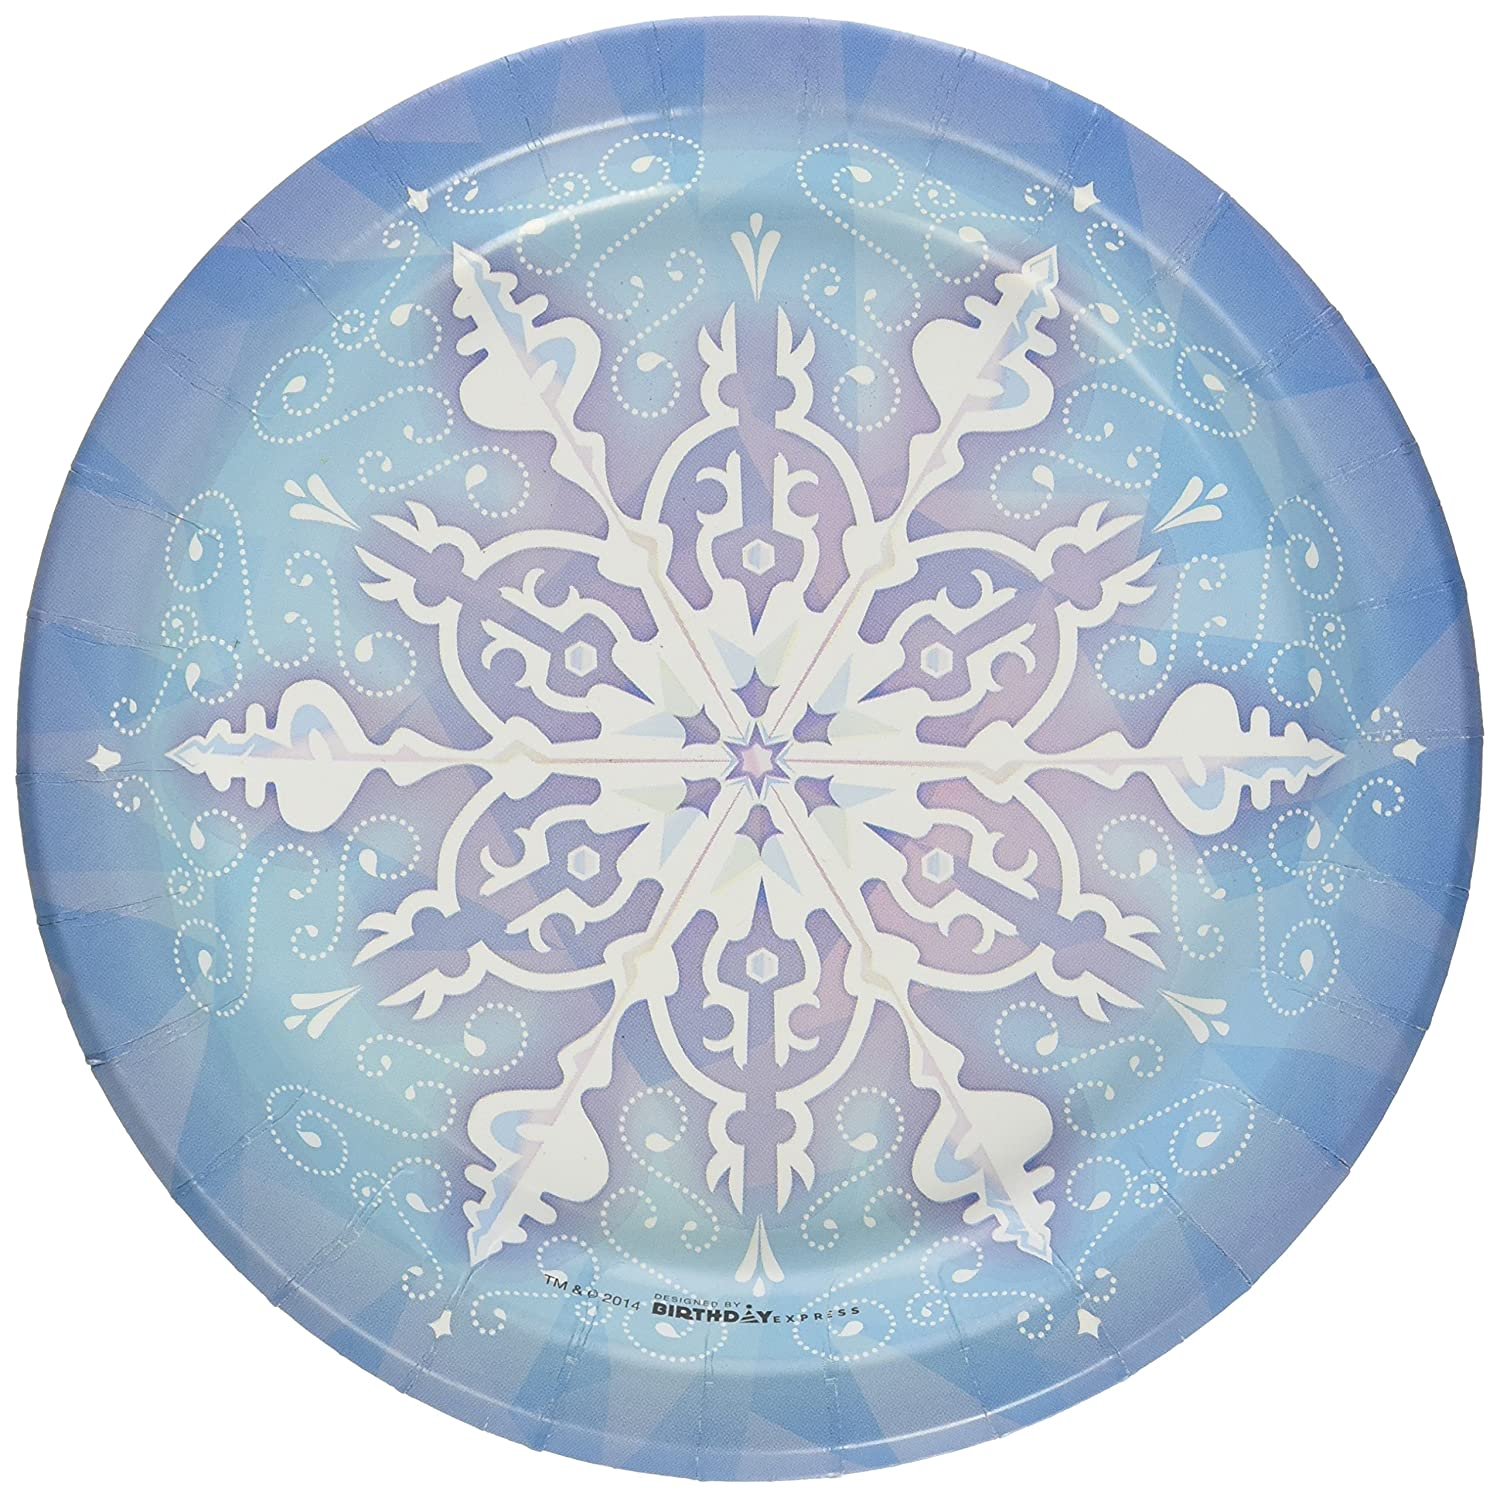 Snowflake Winter Wonderland Christmas Party Supplies Dessert Plates (8)